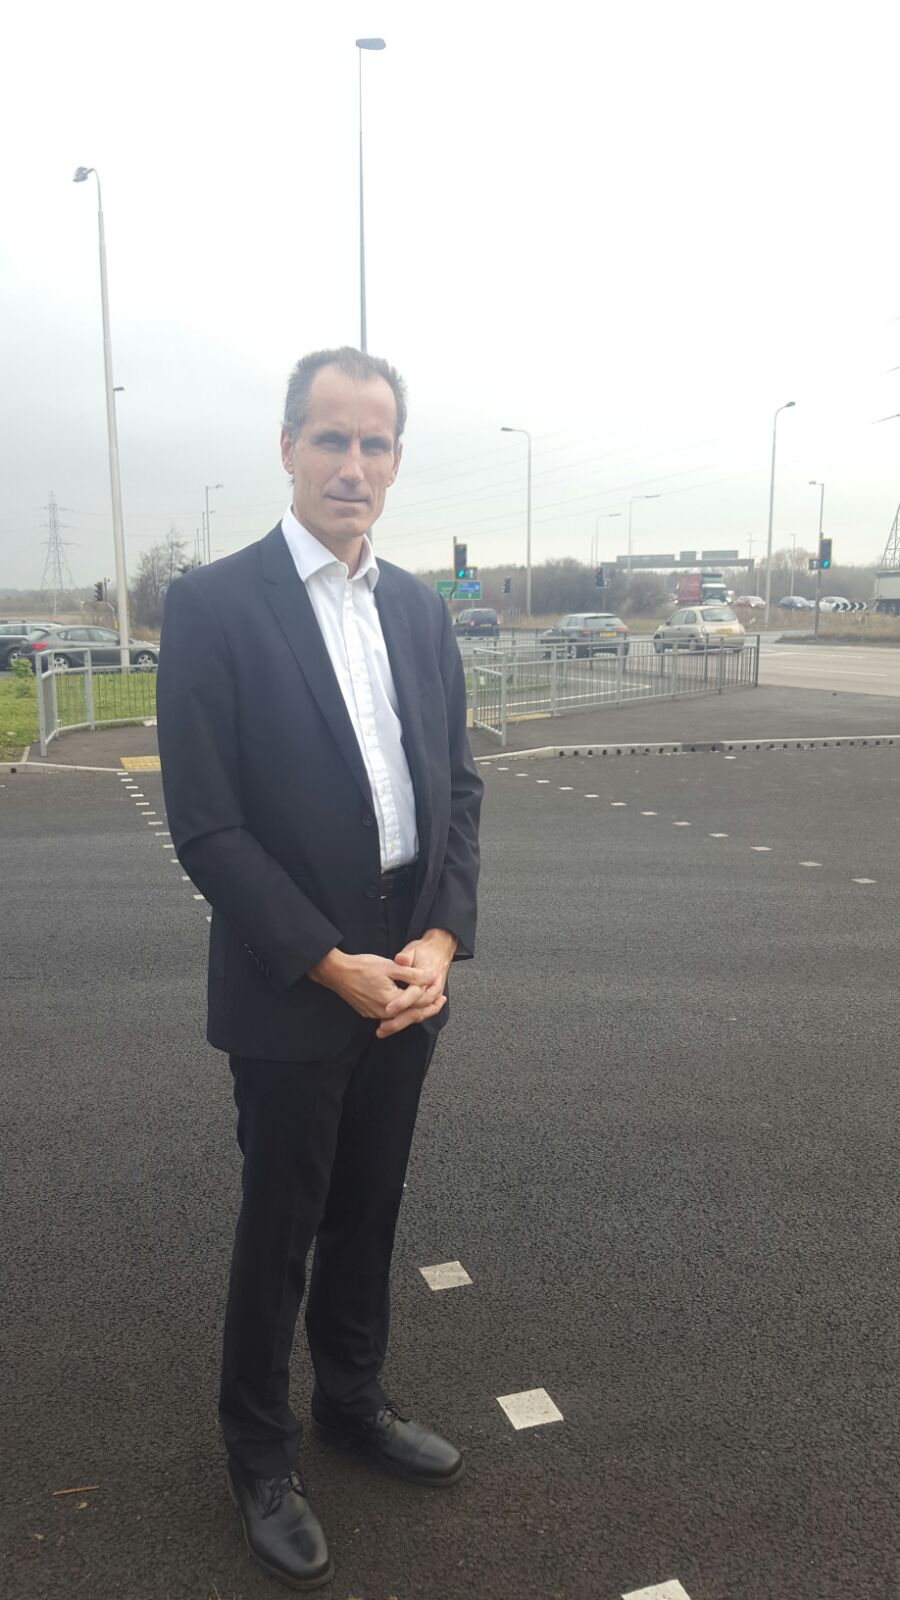 Sefton Central MP, Bill Esterson has written to the Transport Secretary to demand changes be made to Switch Island as a matter of urgency.    The move by the MP follows the latest series of accidents at the busy junction, which followed the opening of the new Broomes Cross Road or Thornton by-pass....